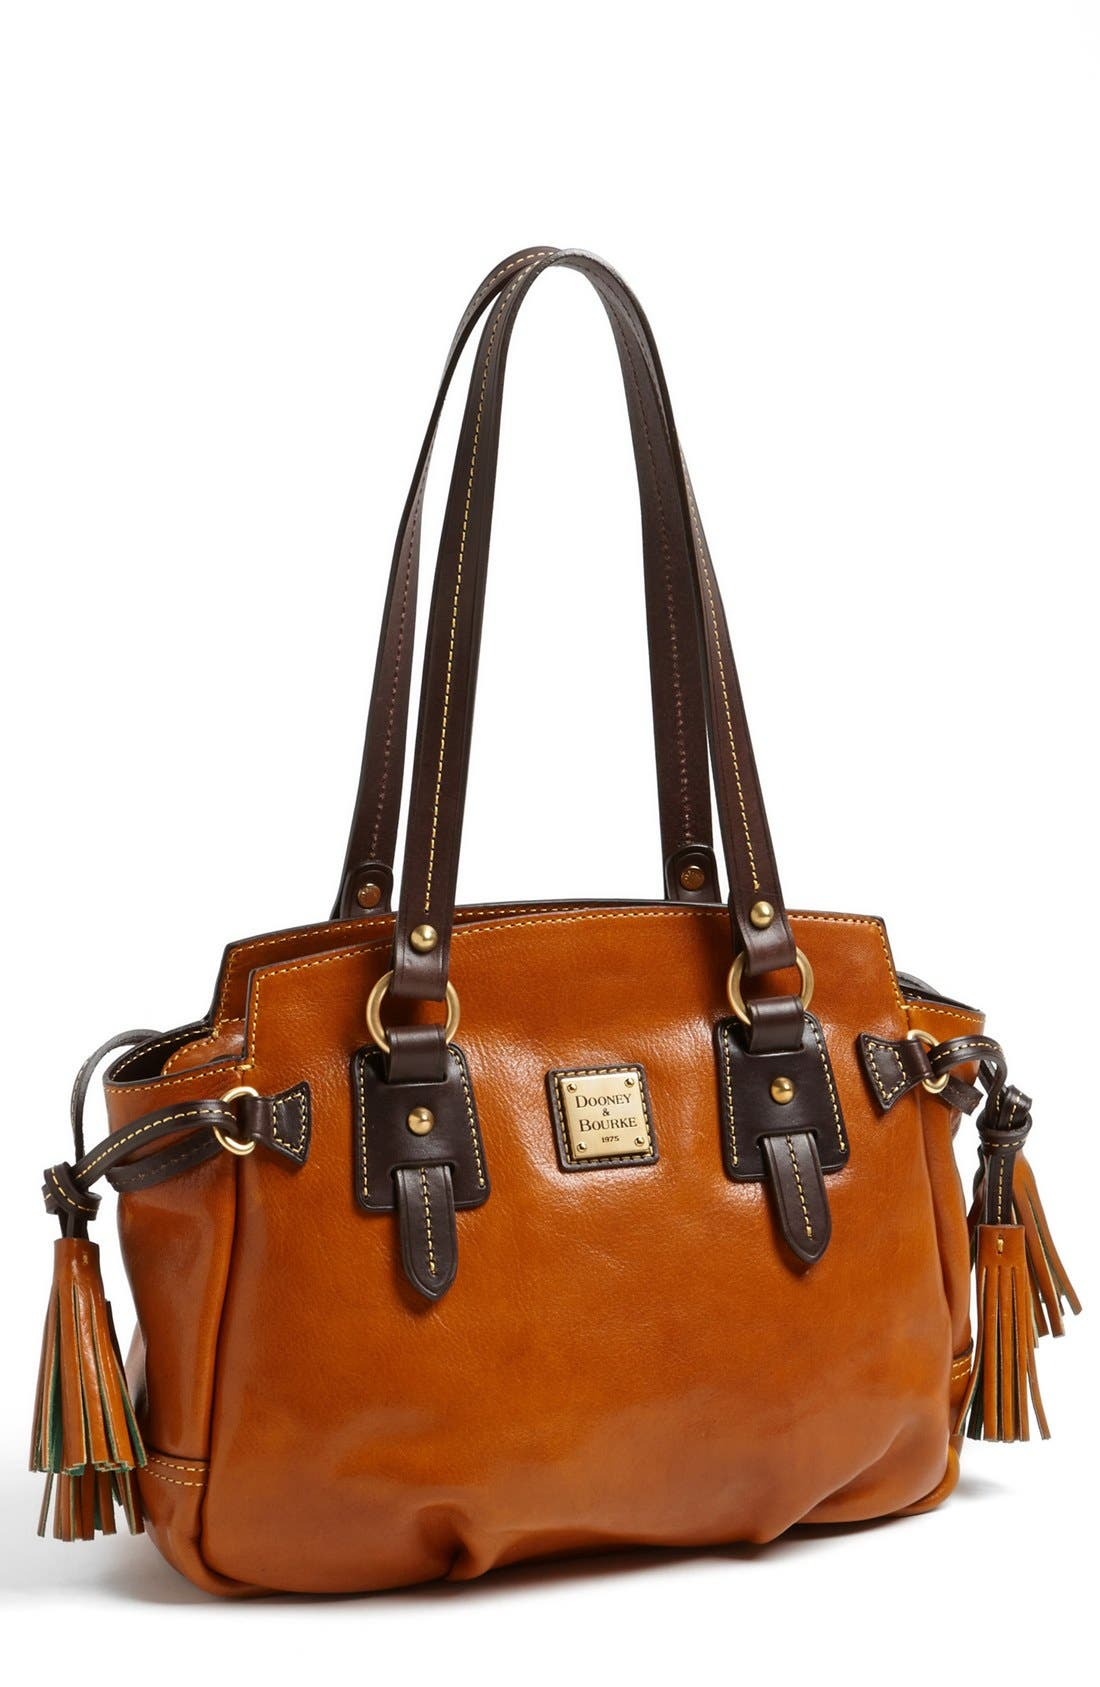 Alternate Image 1 Selected - Dooney & Bourke 'Winged - Small' Leather Handbag